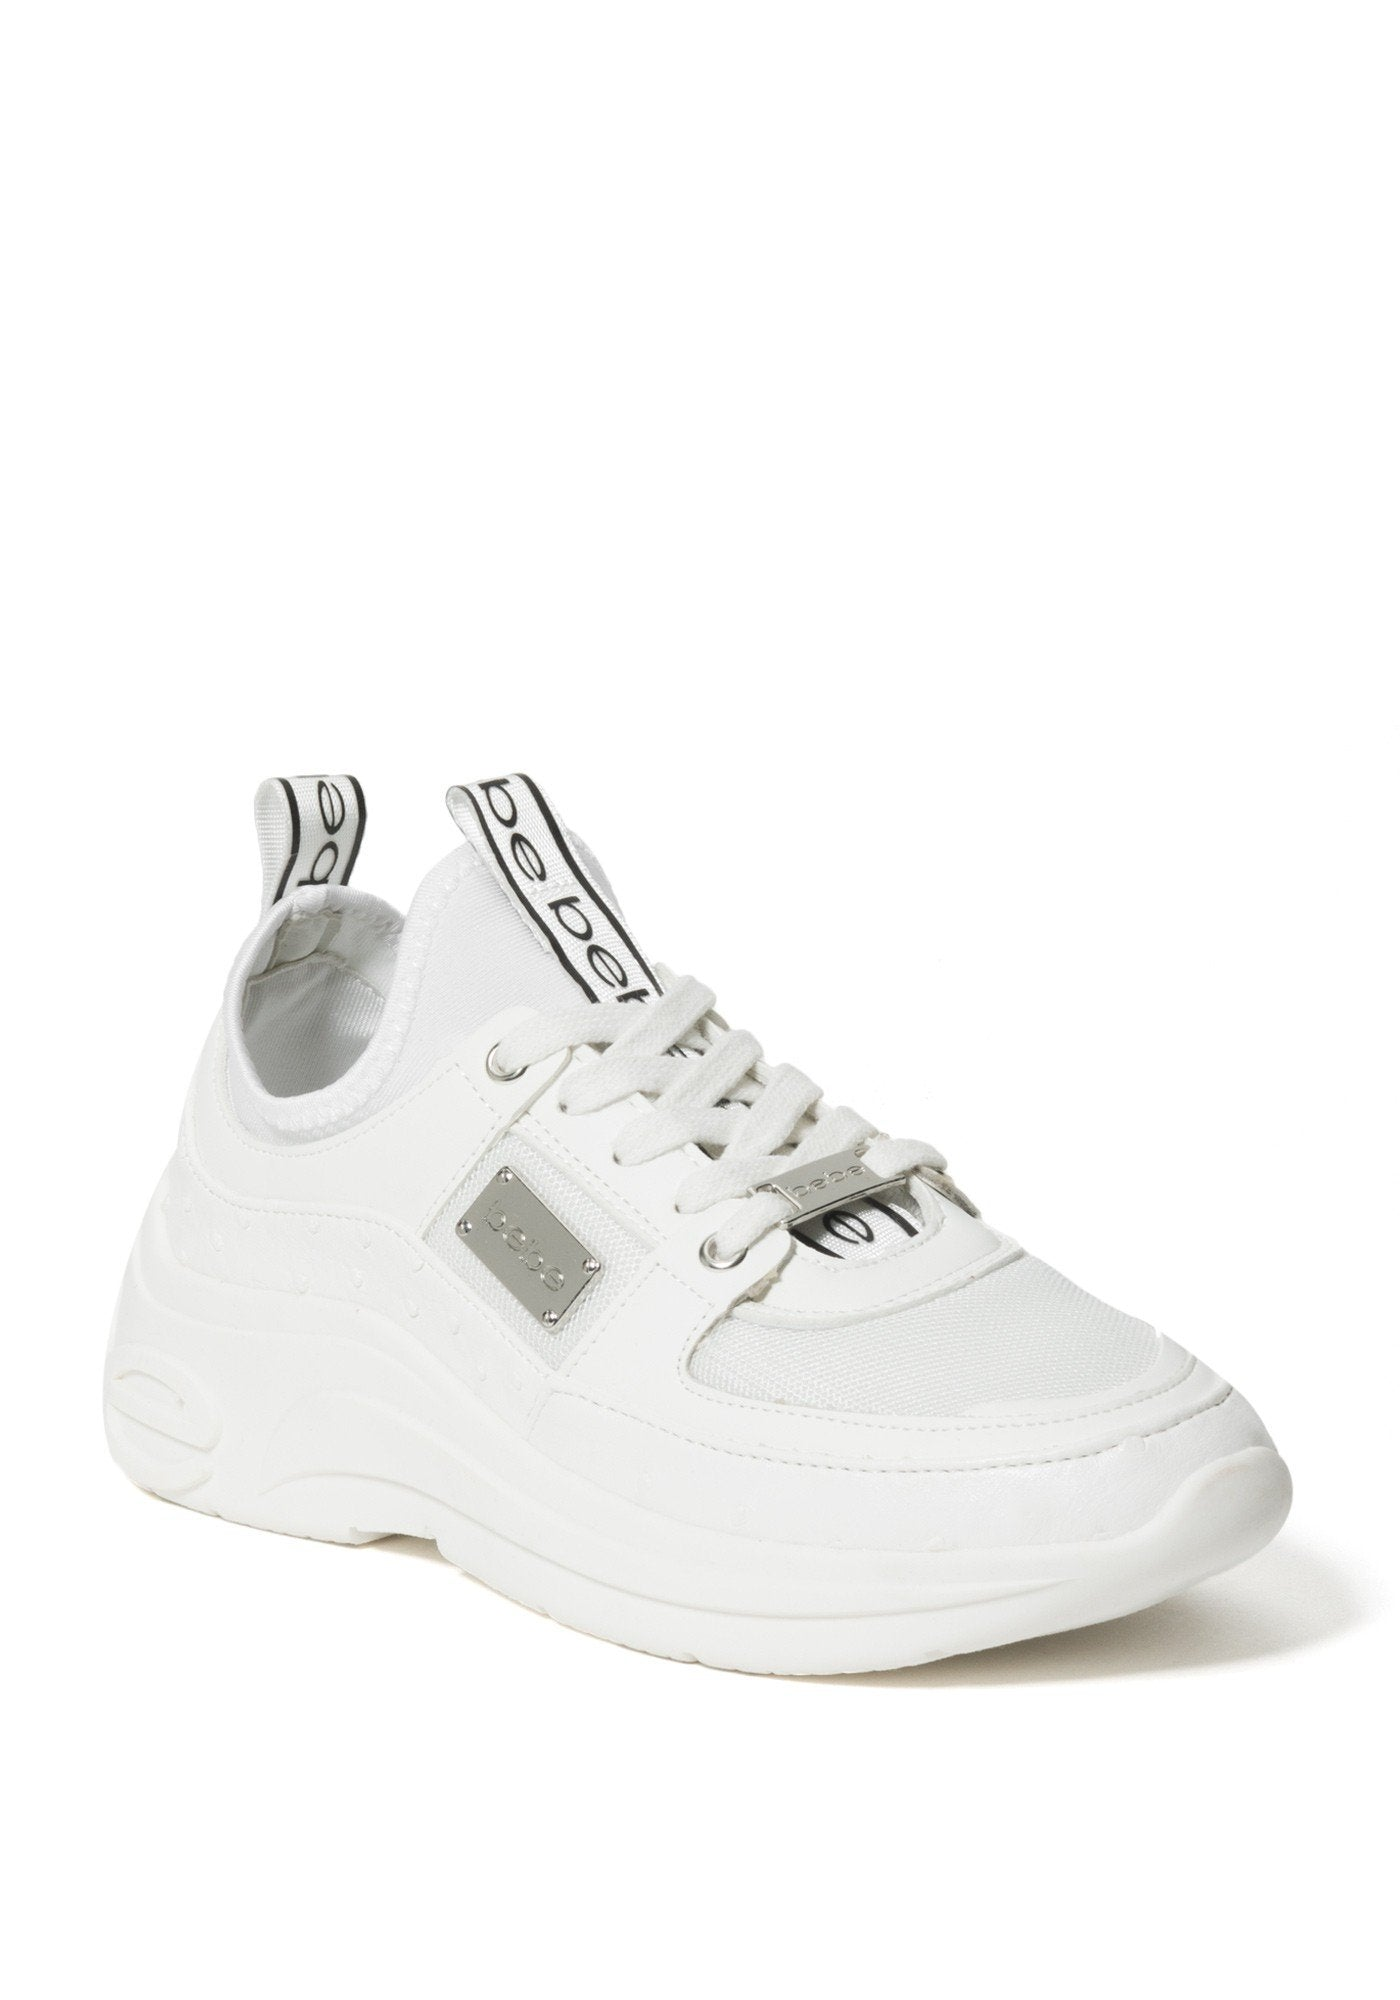 Bebe Women's Lealea Logo Sneakers, Size 6 in White Synthetic